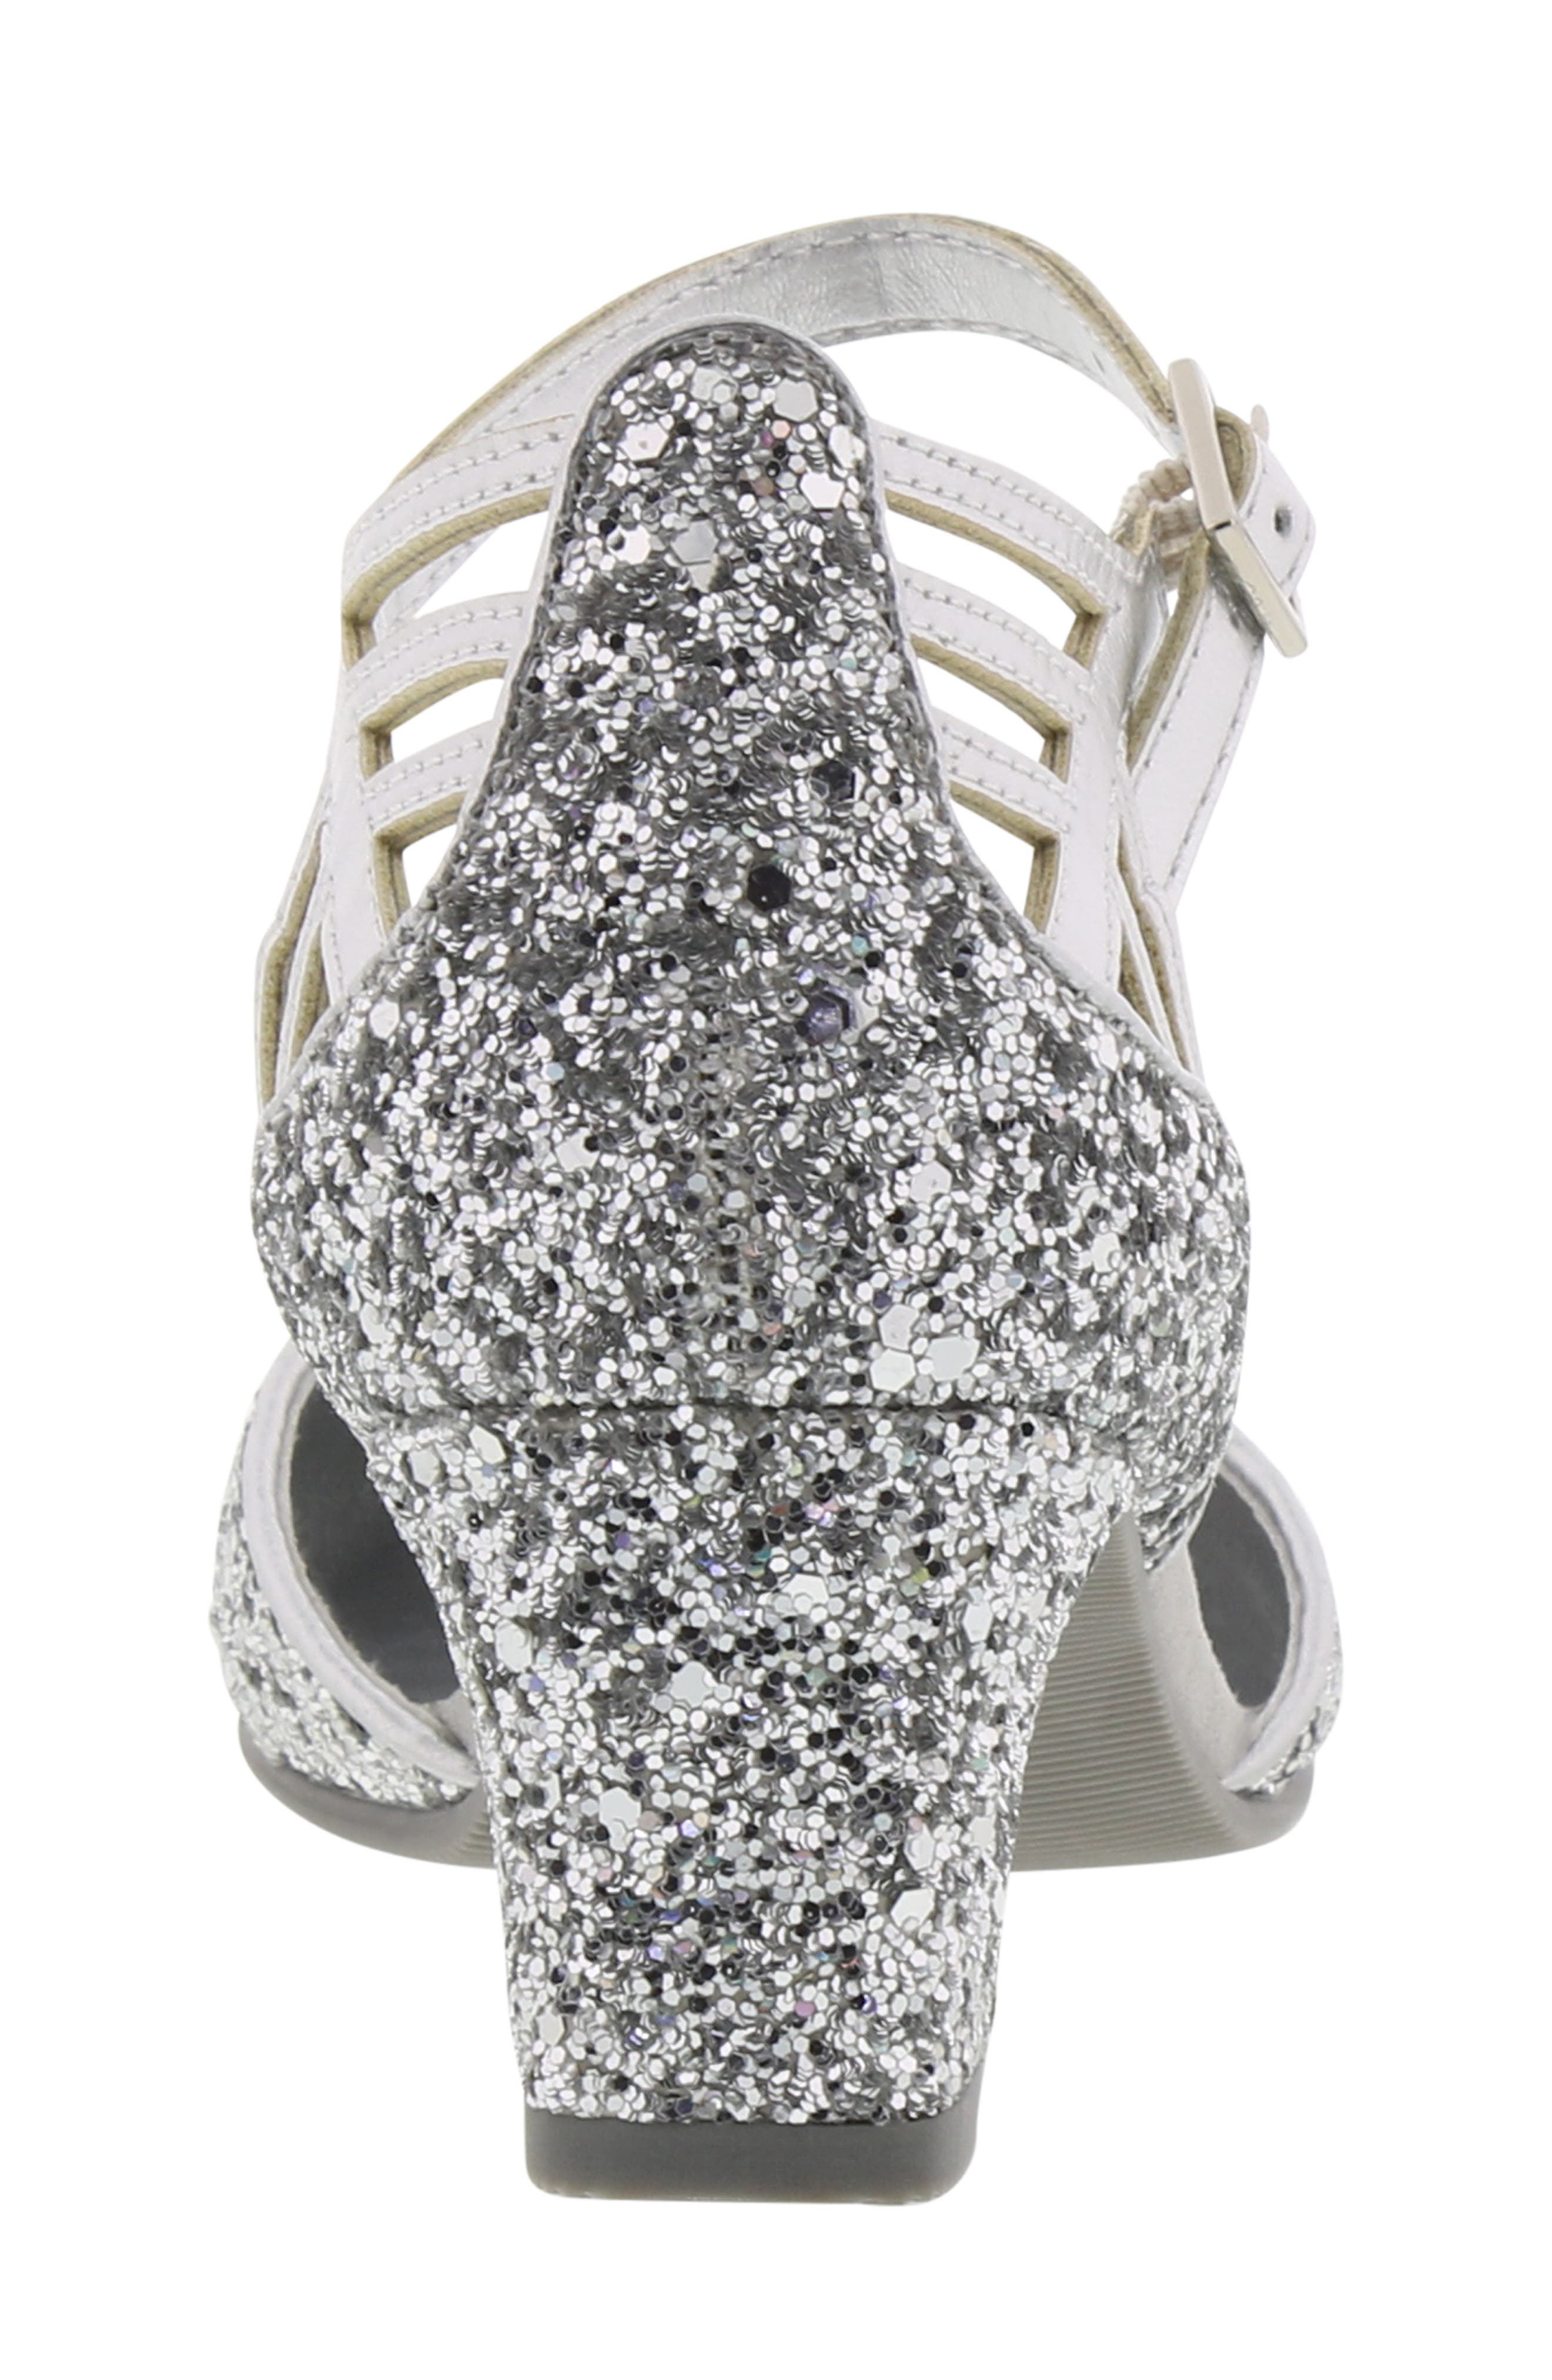 REACTION KENNETH COLE, Kenneth Cole New York Sarah Shine Pump, Alternate thumbnail 7, color, SILVER MULTI